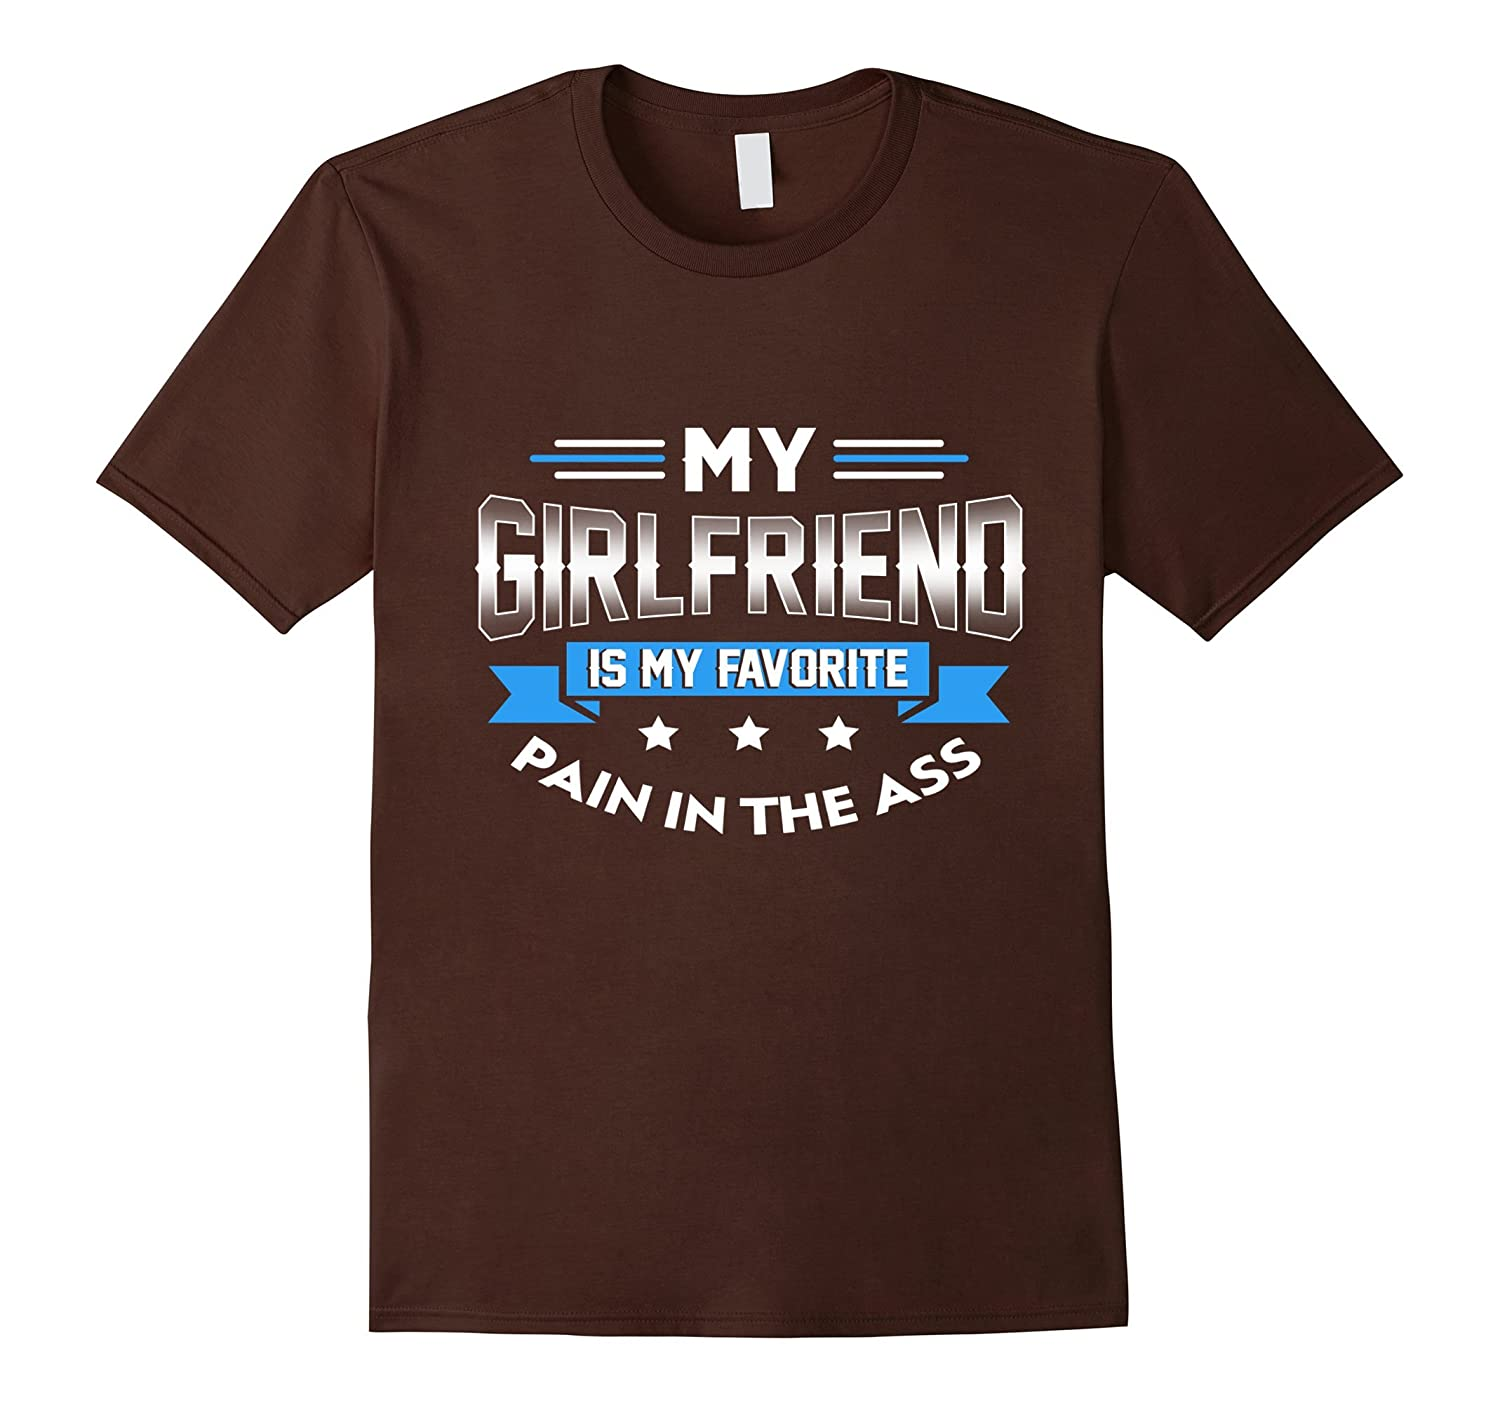 My GirlFriend Is My Favorite Pain In The Ass Shirt-Vaci